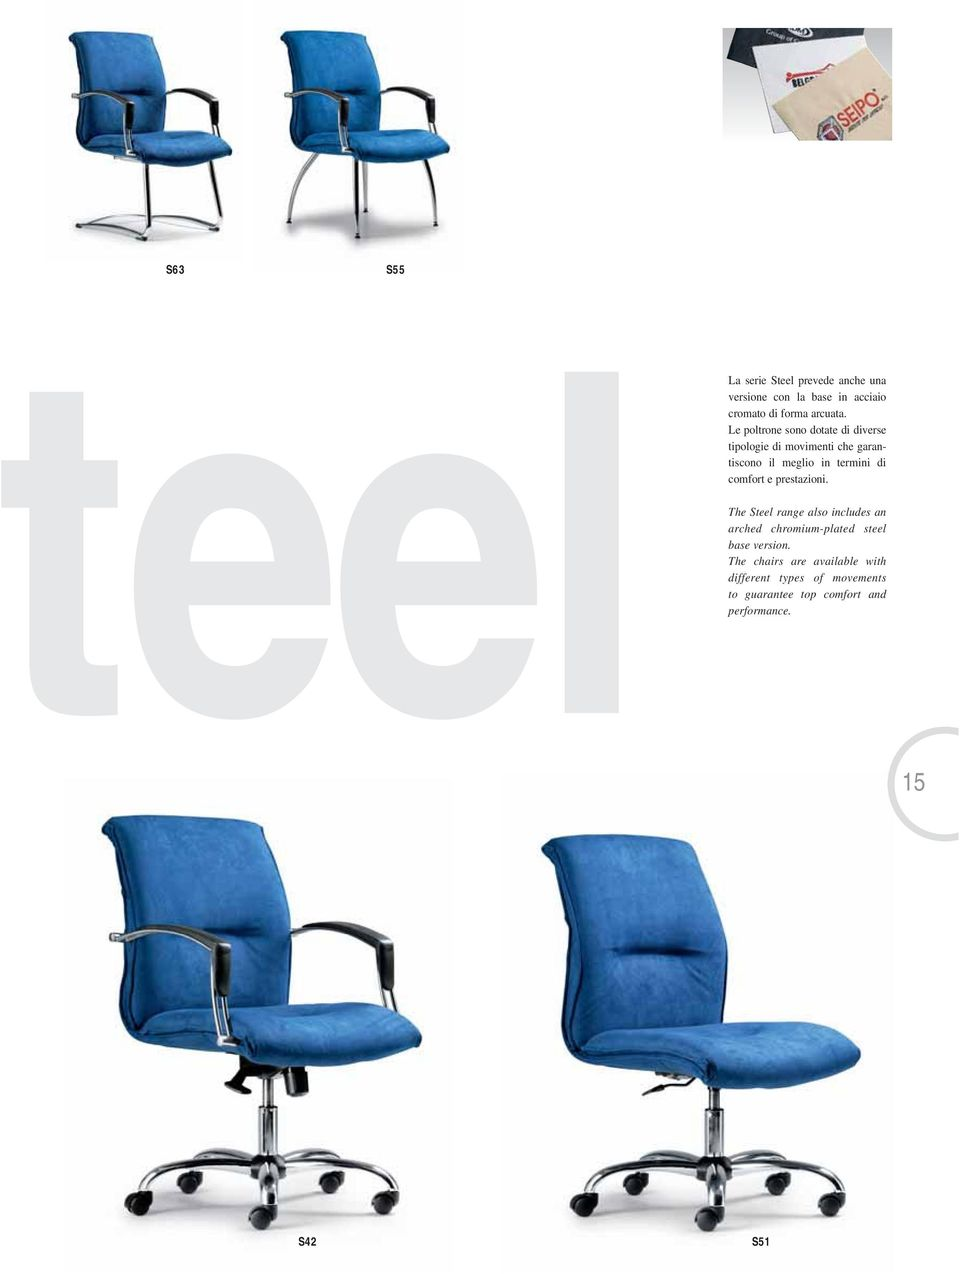 comfort e prestazioni. The Steel range also includes an arched chromium-plated steel base version.